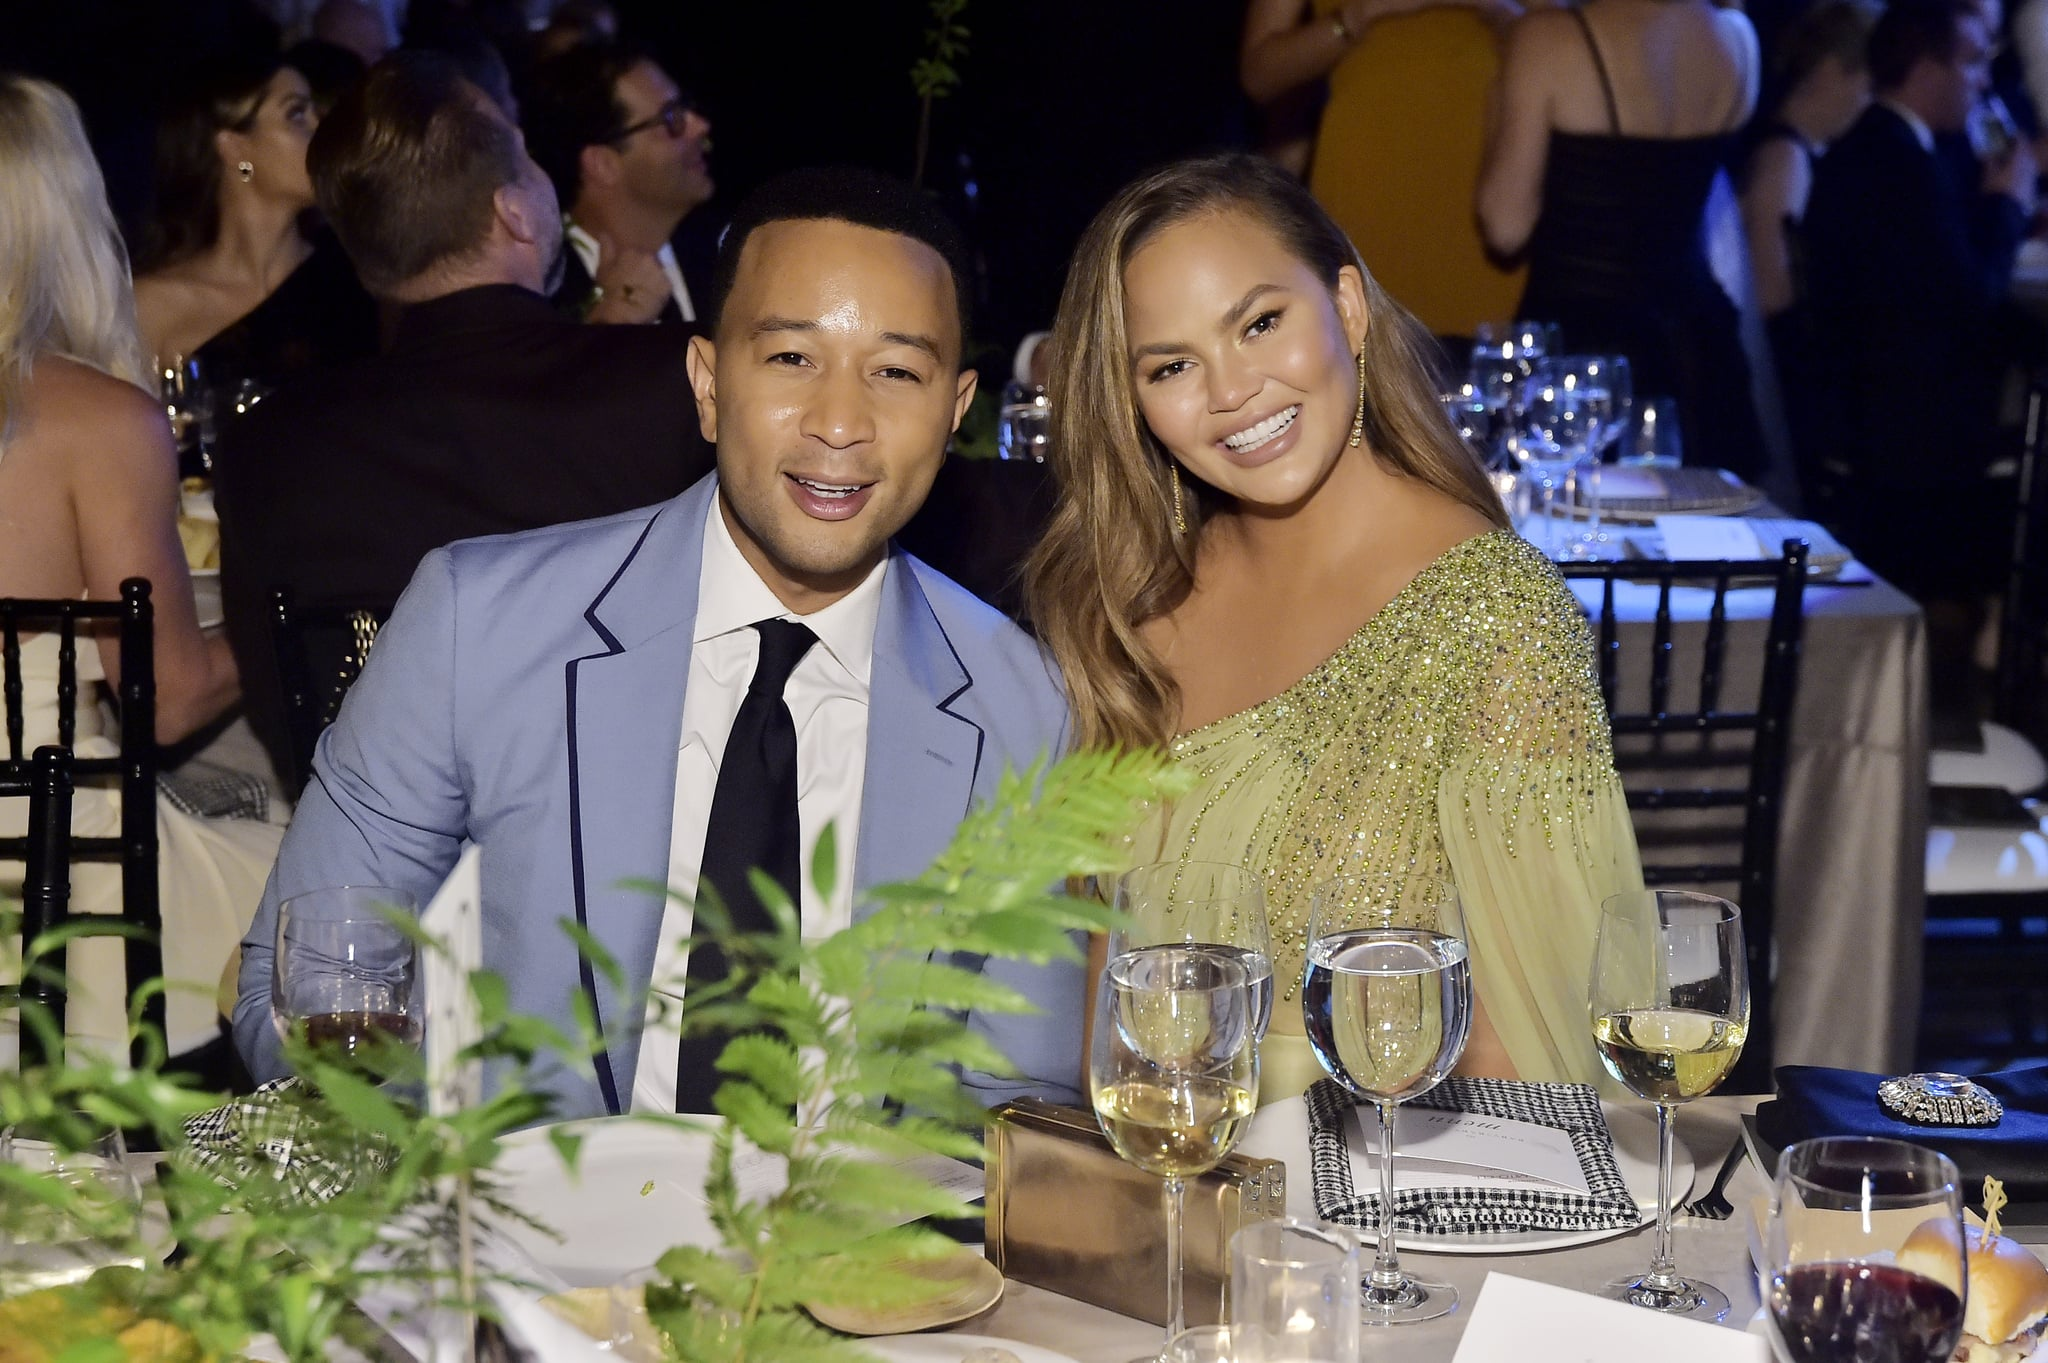 LOS ANGELES, CALIFORNIA - NOVEMBER 09: John Legend and Chrissy Teigen attend the 2019 Baby2Baby Gala presented by Paul Mitchell on November 09, 2019 in Los Angeles, California. (Photo by Stefanie Keenan/Getty Images for Baby2Baby)